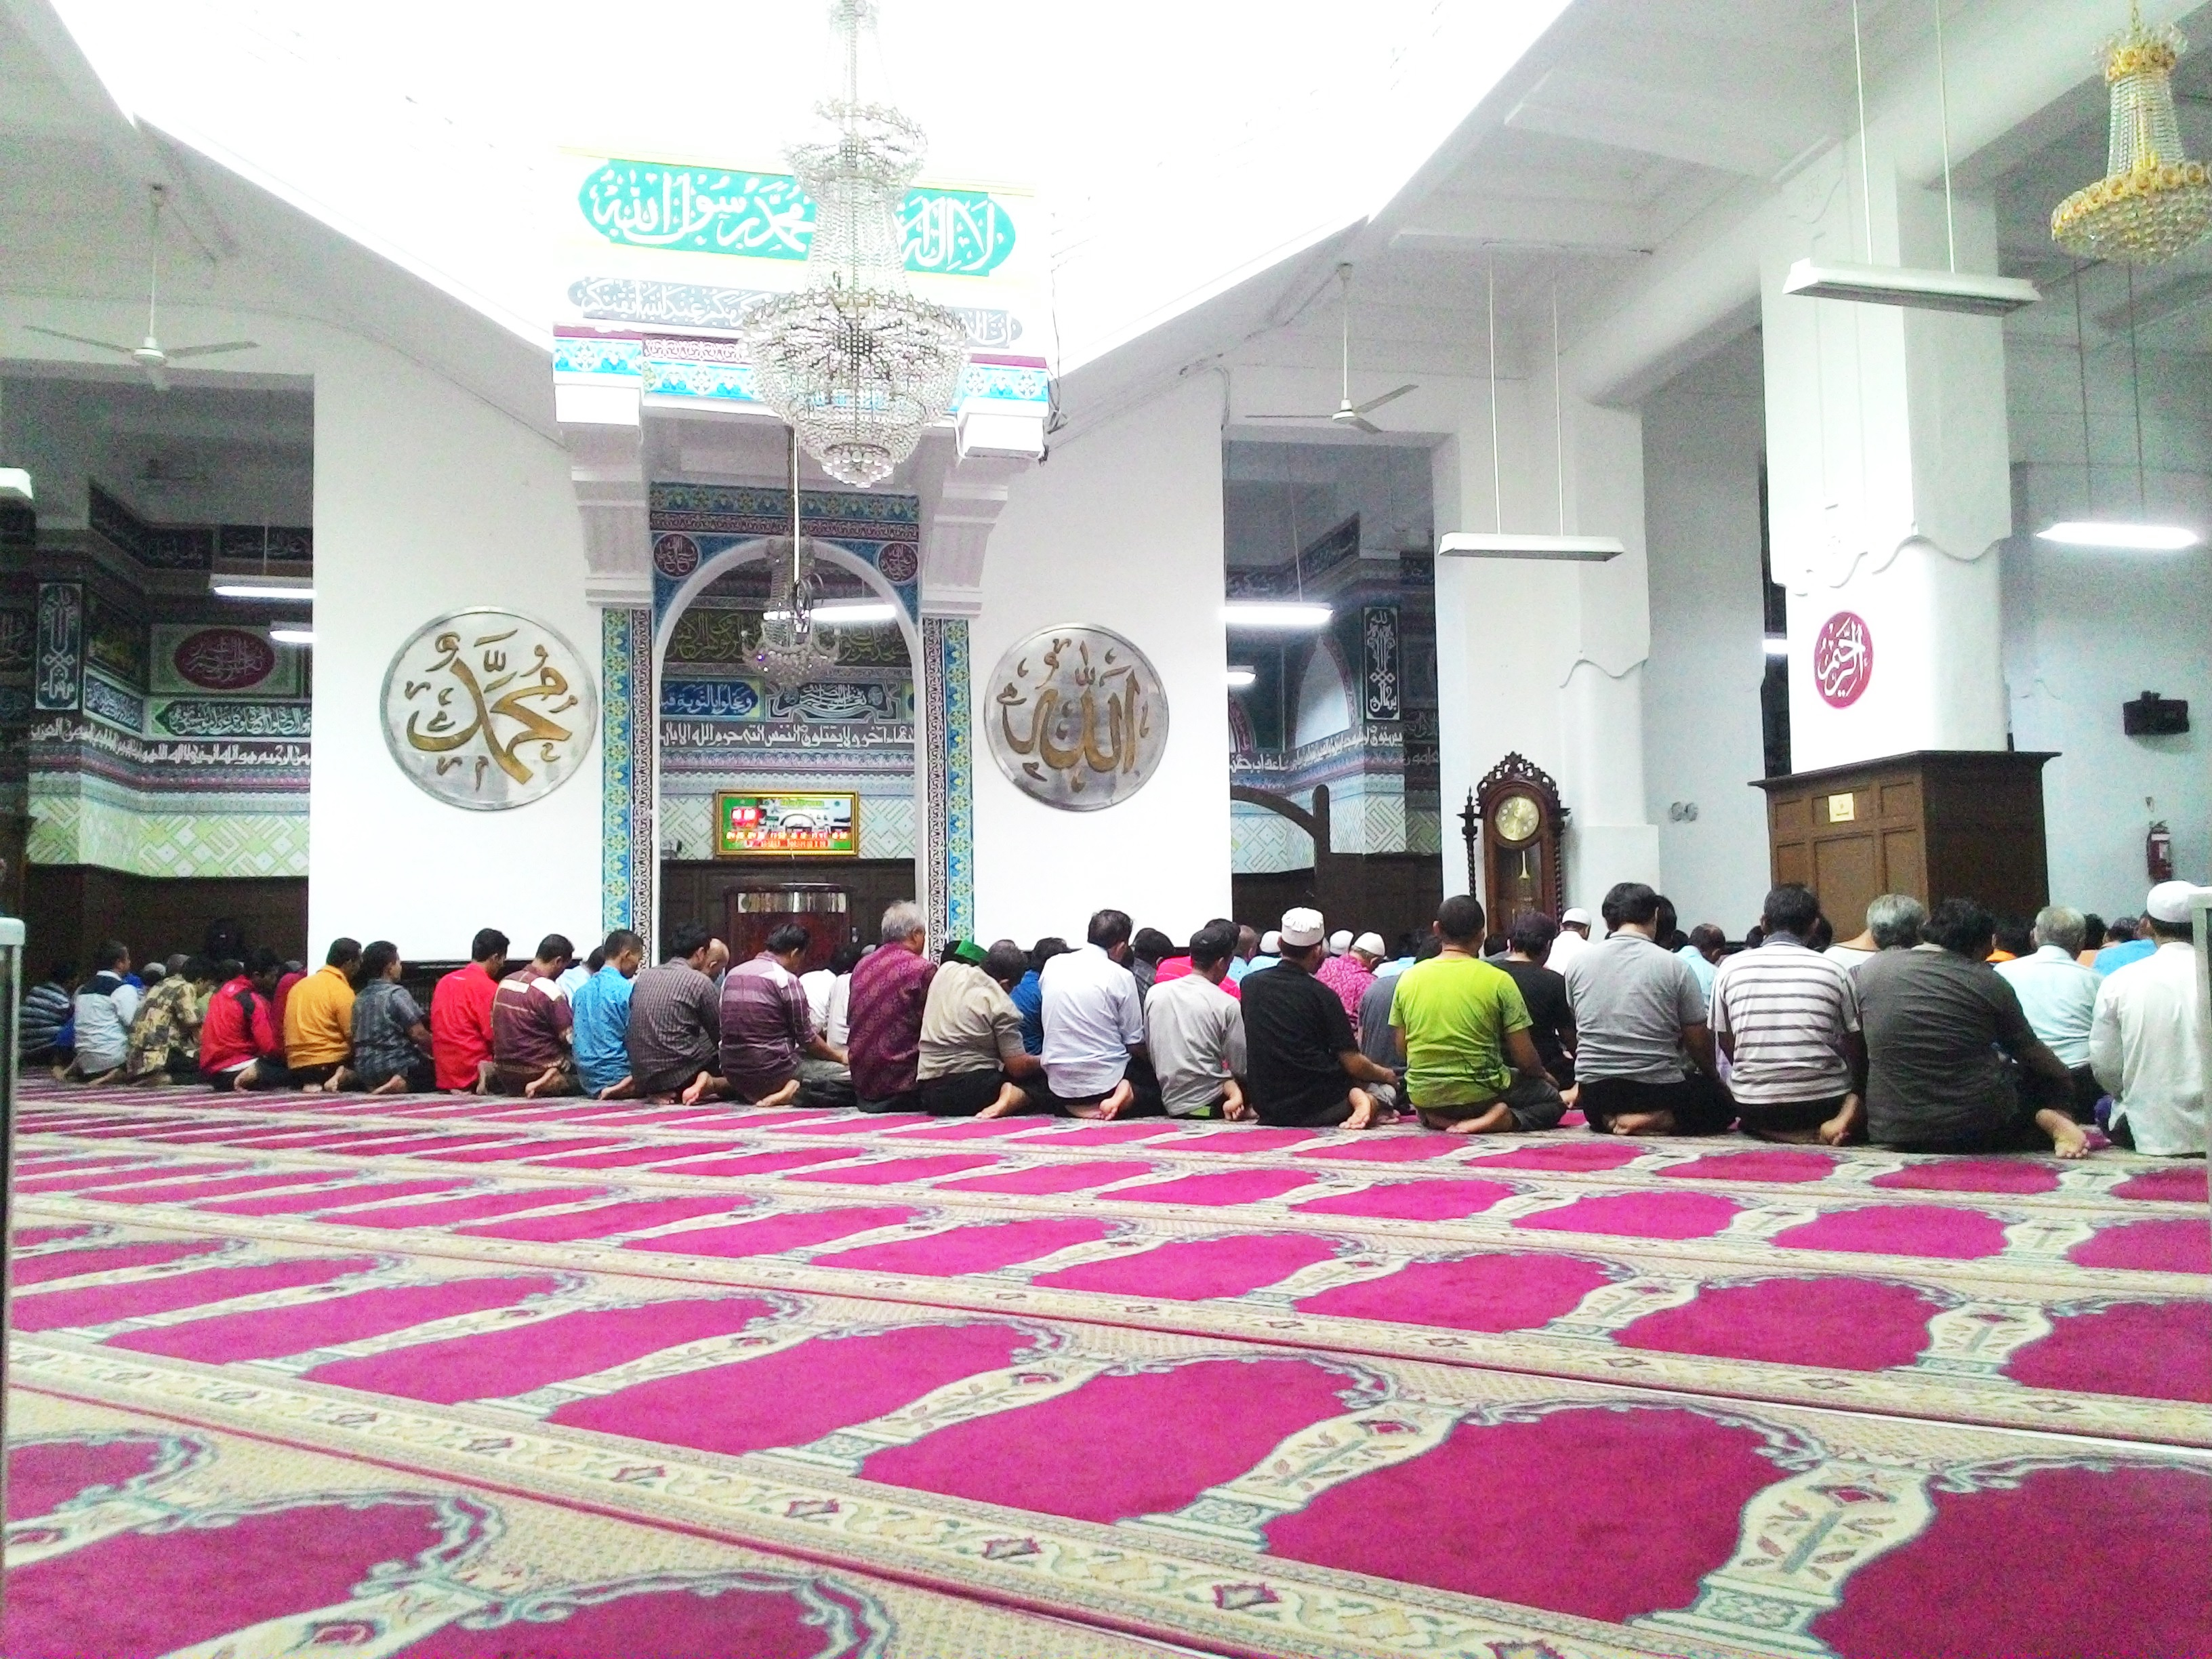 Men praying at the Cut Meutia Mosque in Jakarta